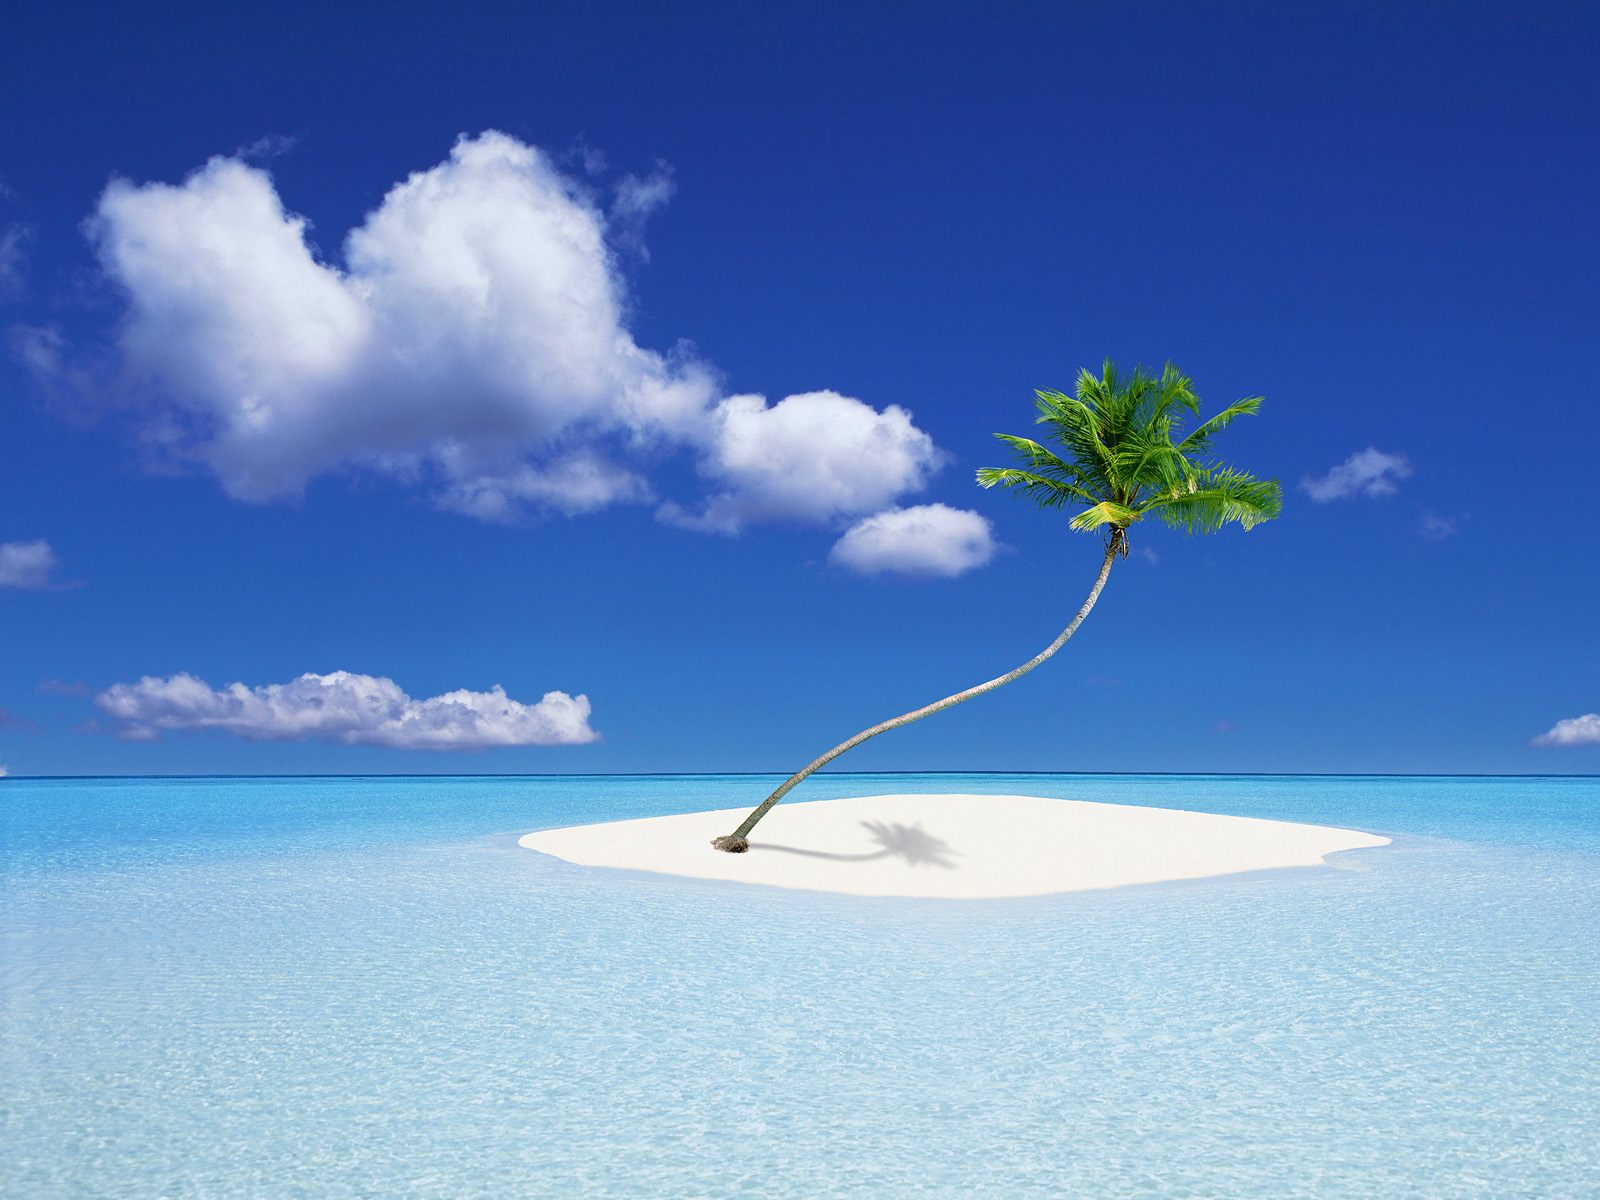 http://1.bp.blogspot.com/-SMAVCVMzdK4/TdrHLdpz_RI/AAAAAAAAAGA/uq61WwNijTI/s1600/island_holiday-normal-3D-Holidays-Wallpapers.jpg